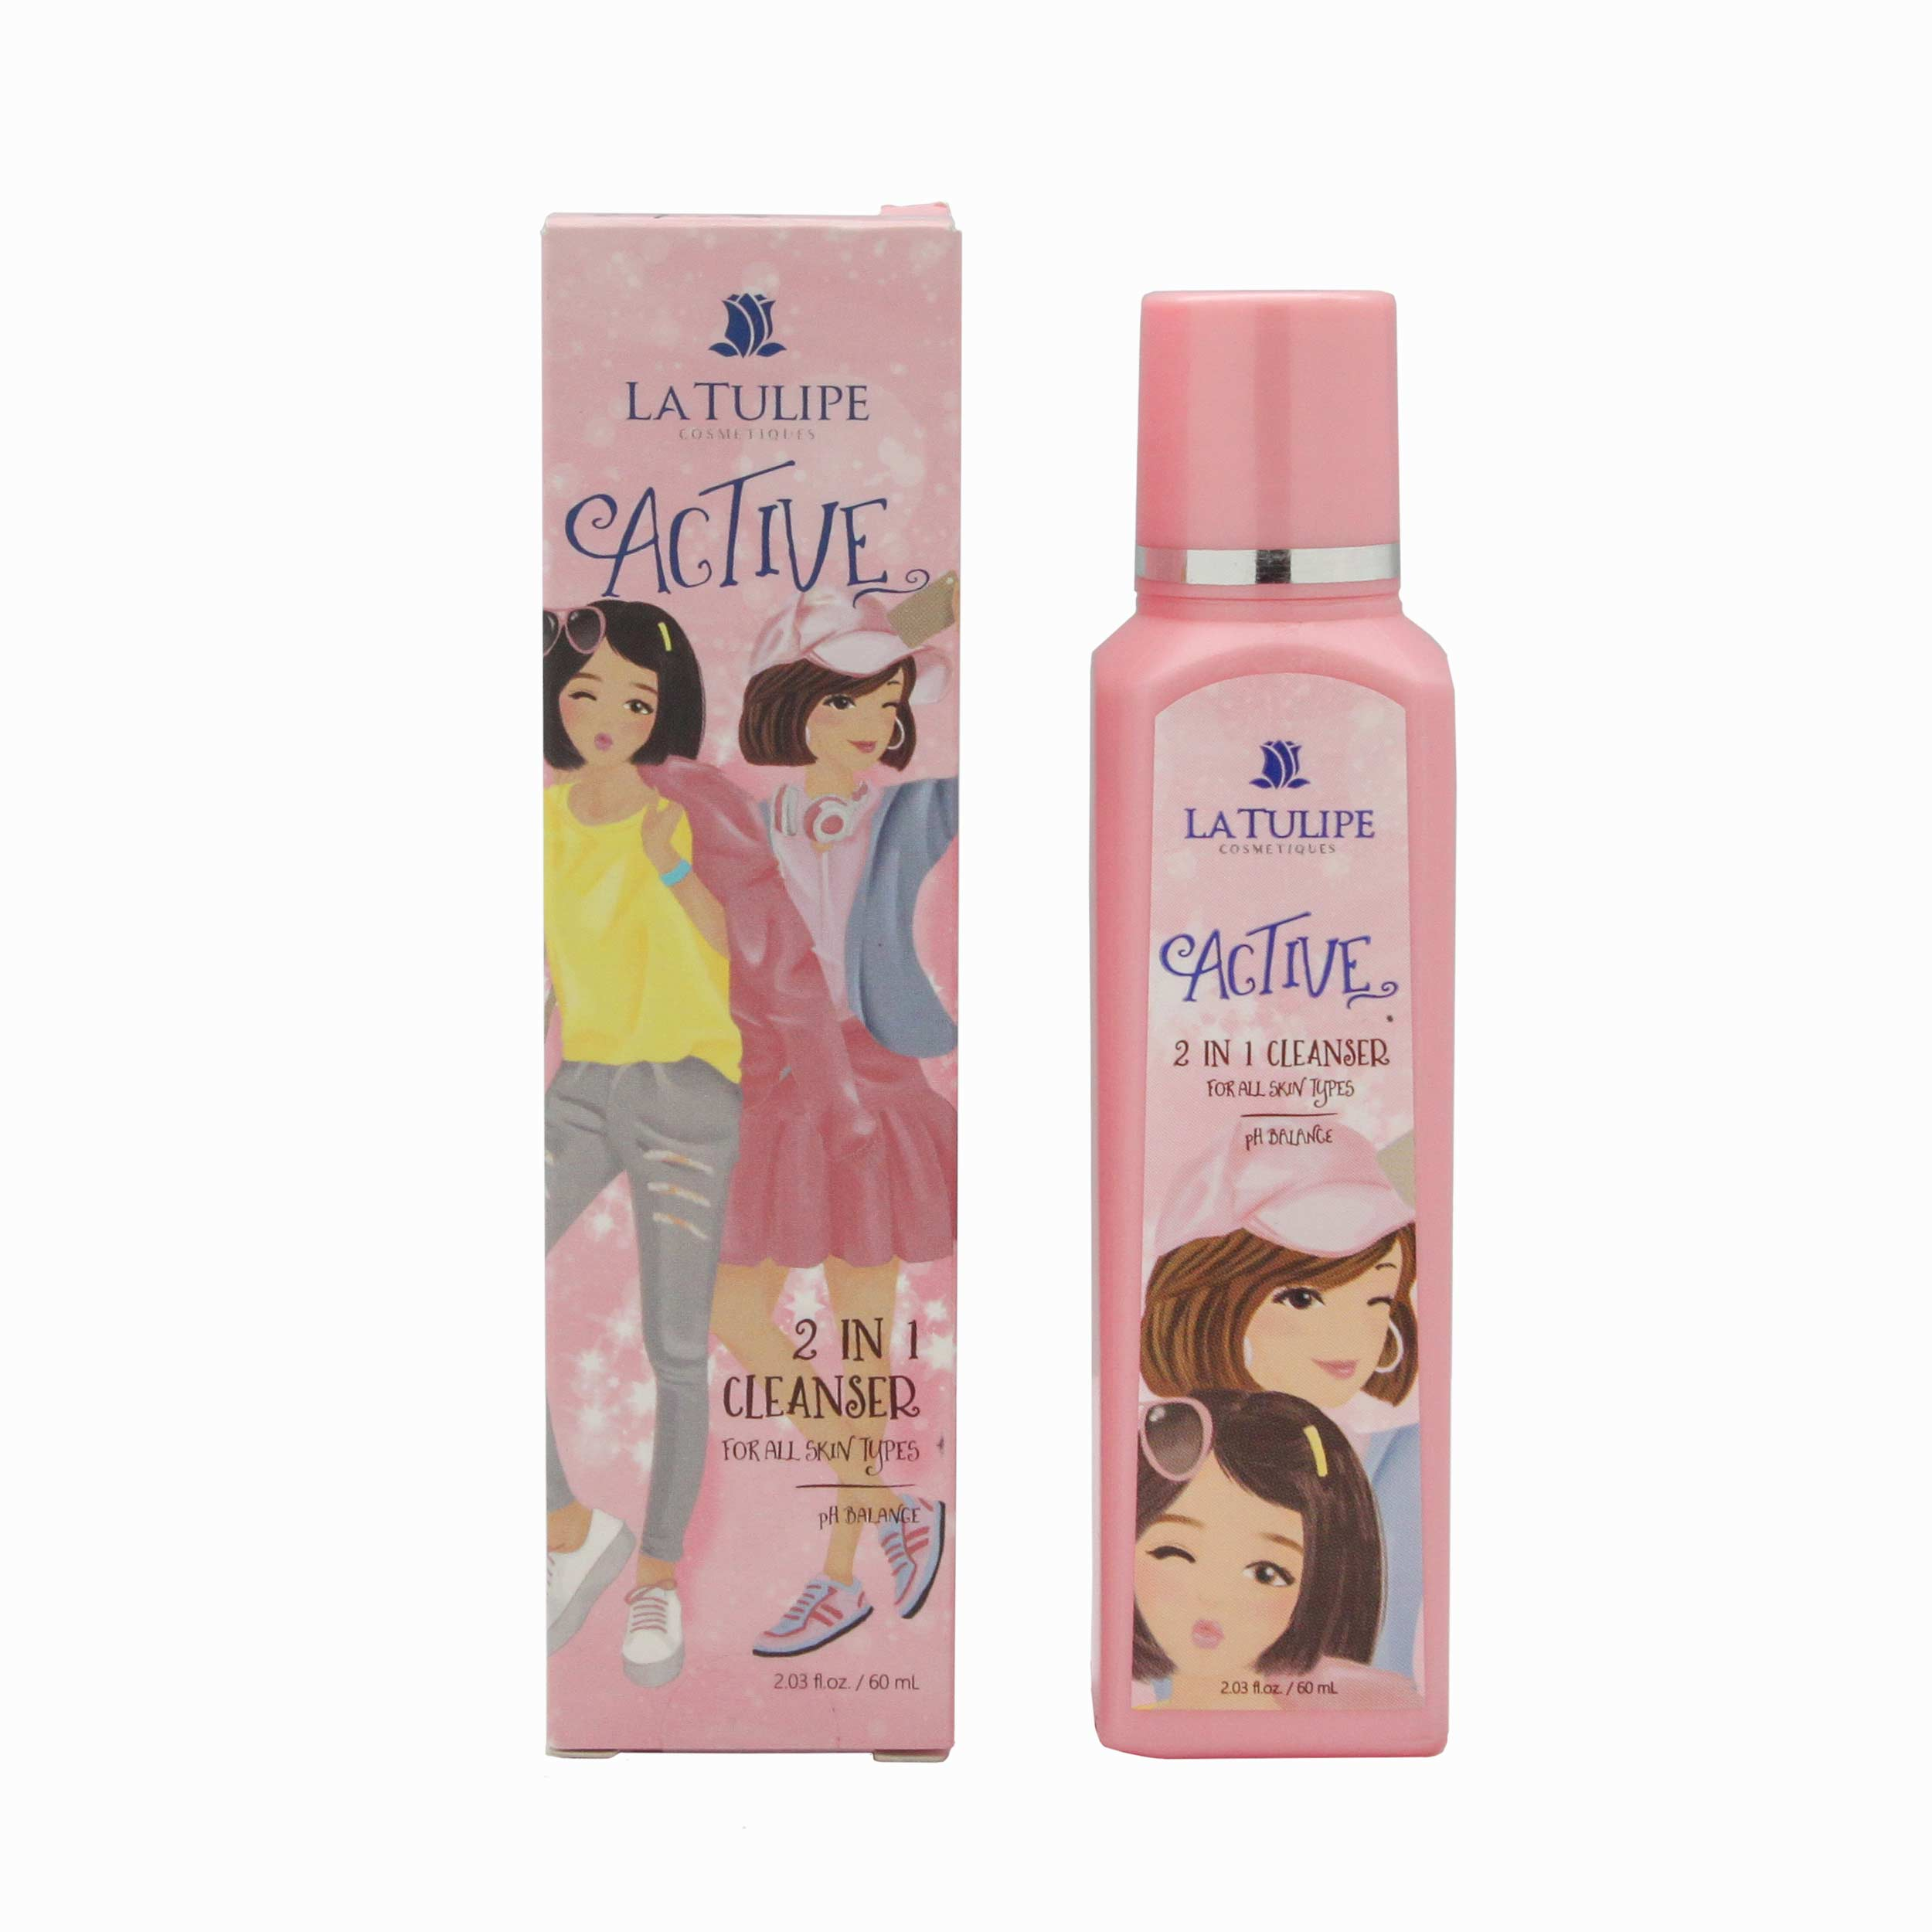 La-Tulipe-Active-2-in-1-Cleanser-for-all-skin-types-sfw